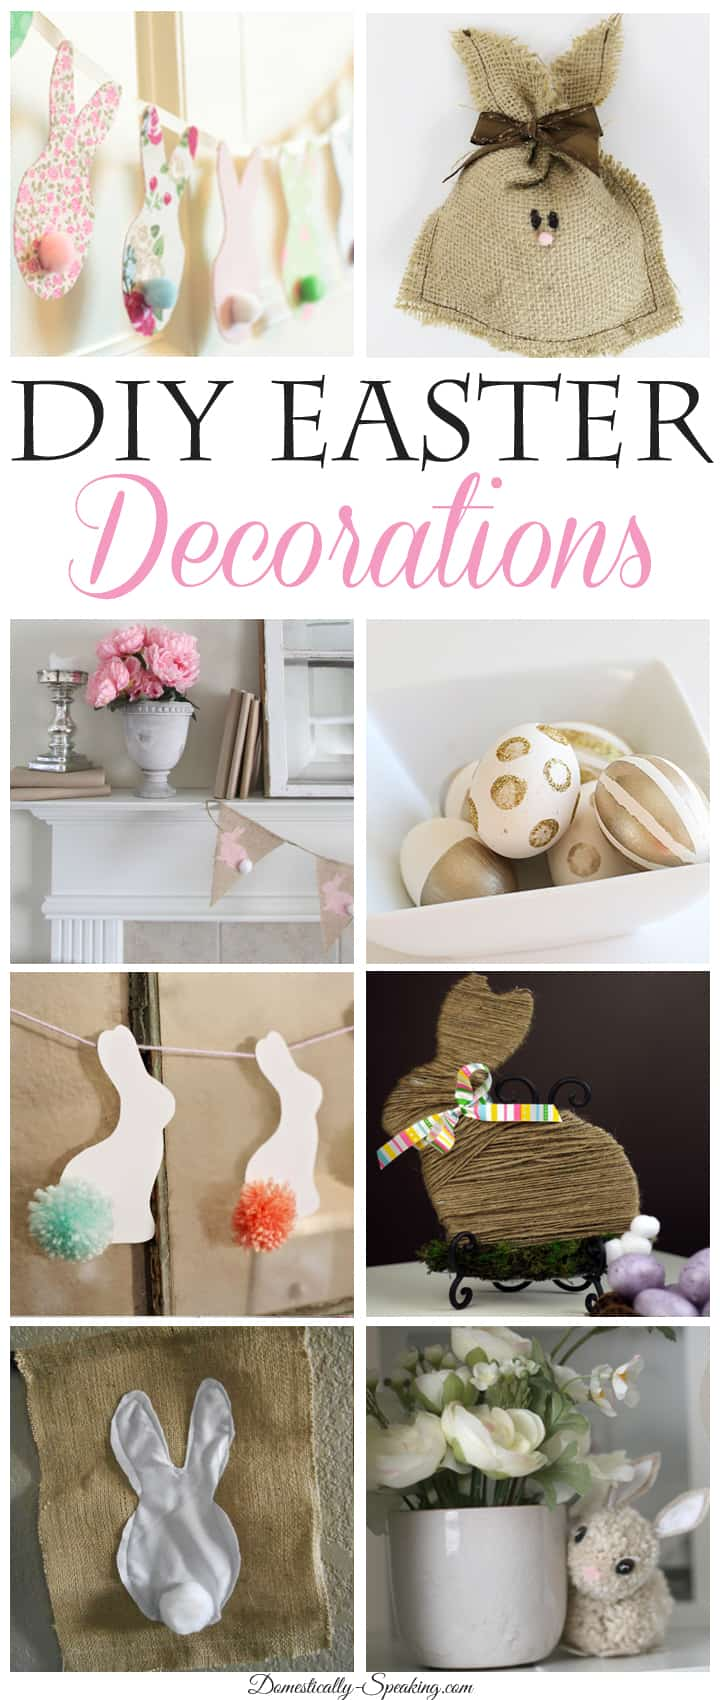 Diy Spring Decor: Domestically Speaking